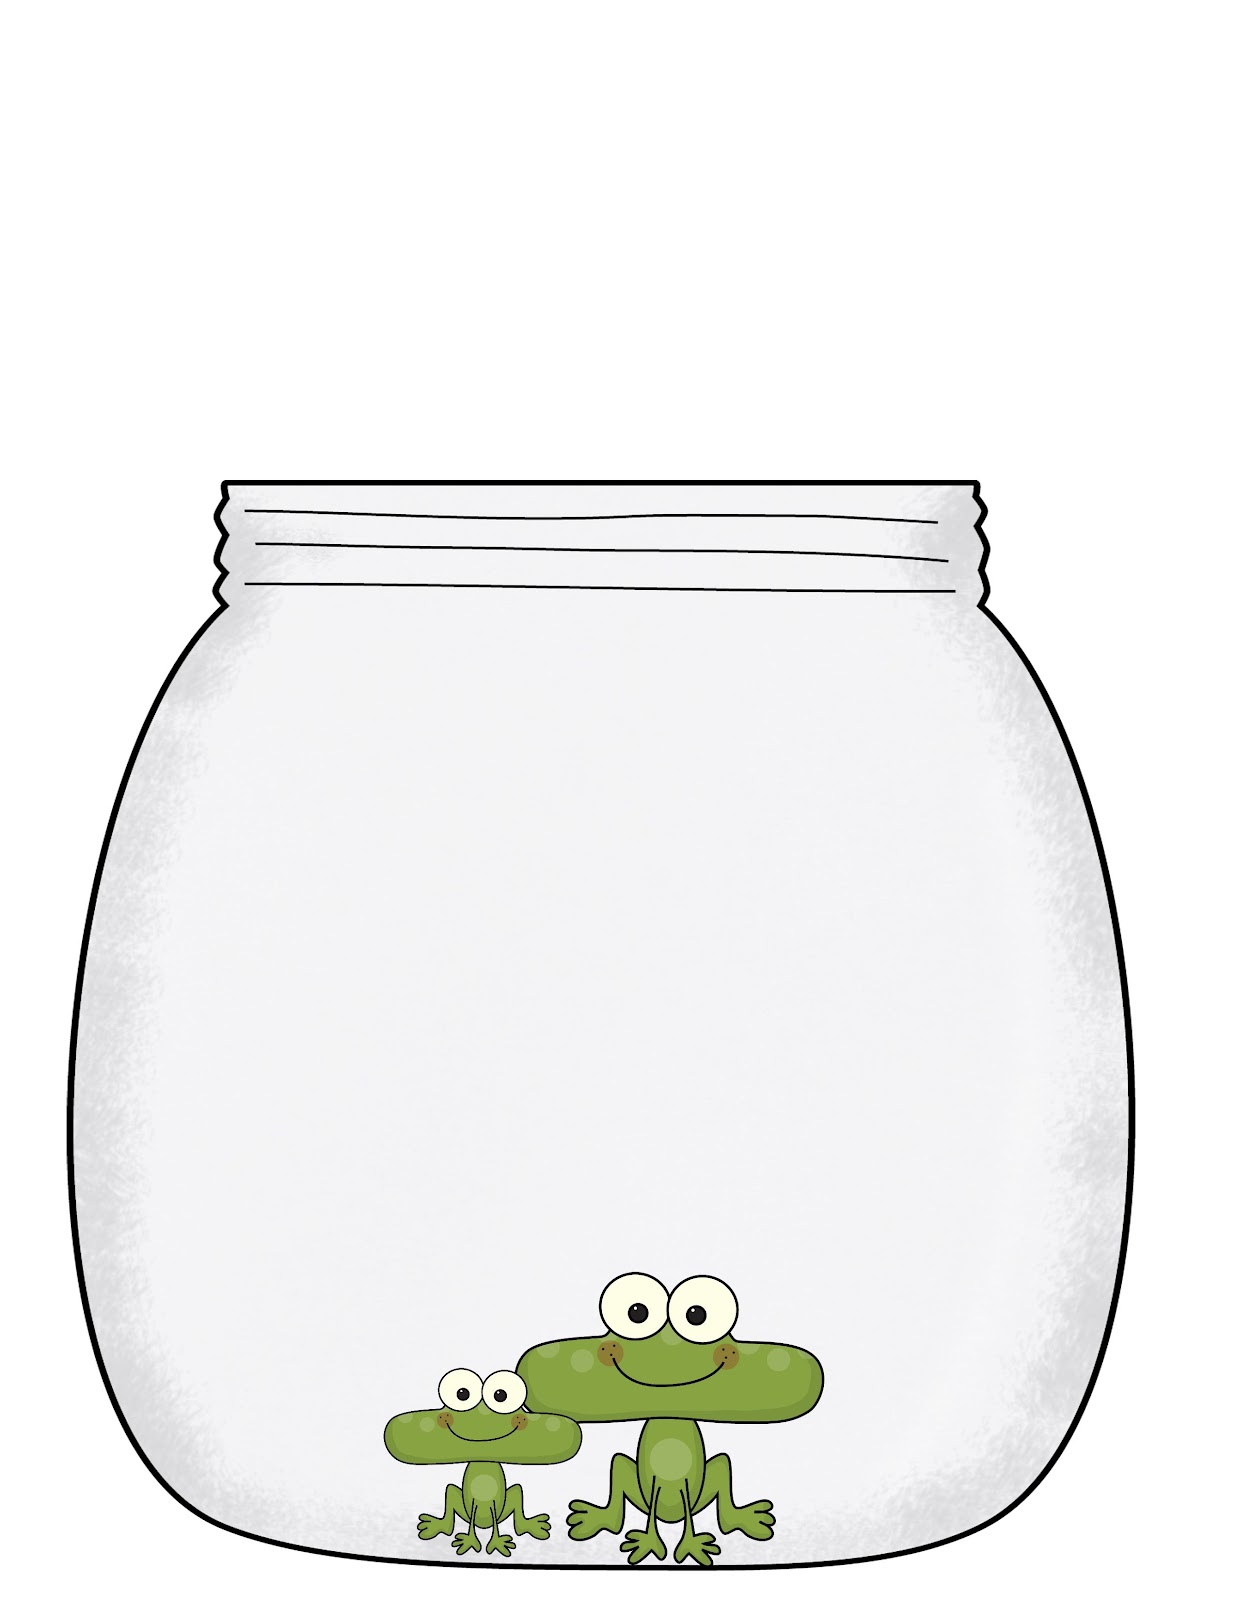 Acorns In Jar Worksheet